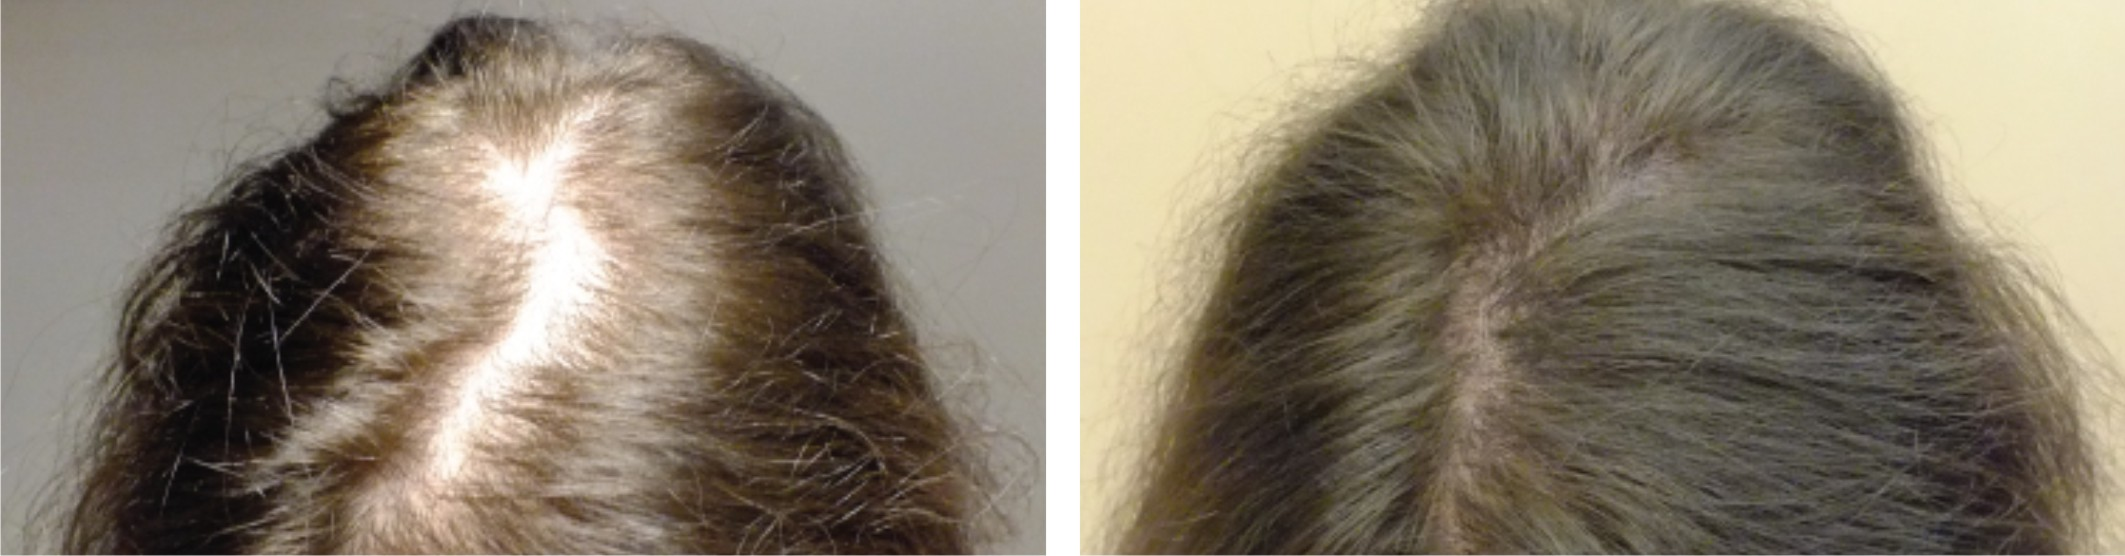 Hair Fall Image Two